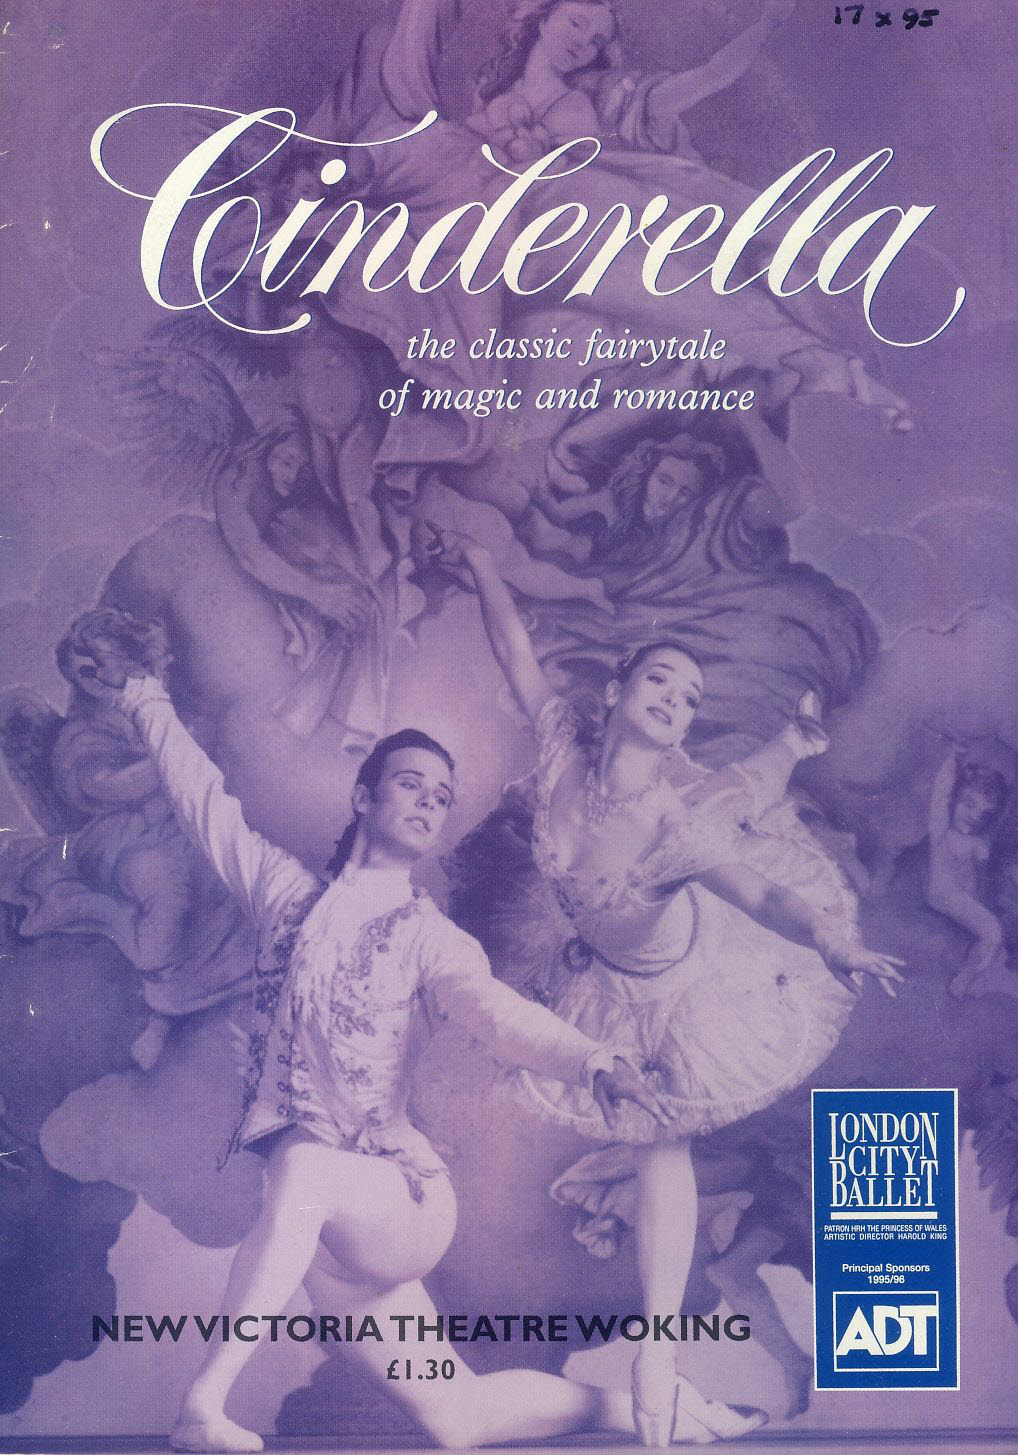 London City Ballet CINDERELLA 1995 Woking New Victoria theatre Programme refb100854 Good Condition. Measure approx 17.5cm x 25cm Date written on cover.